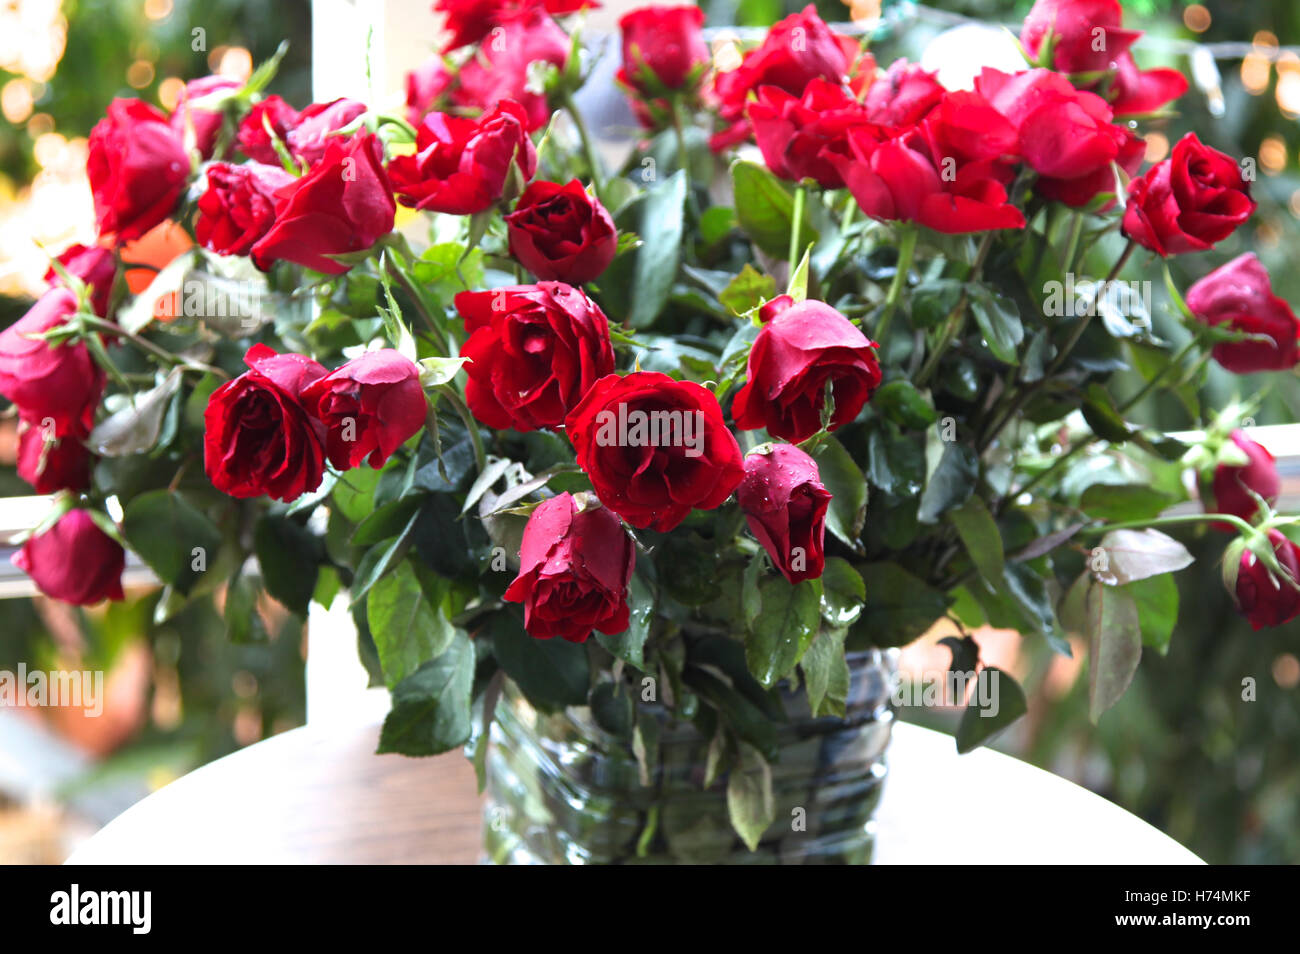 Red Bright Beautiful Flowers Roses Thailand Southeast Asia Stock